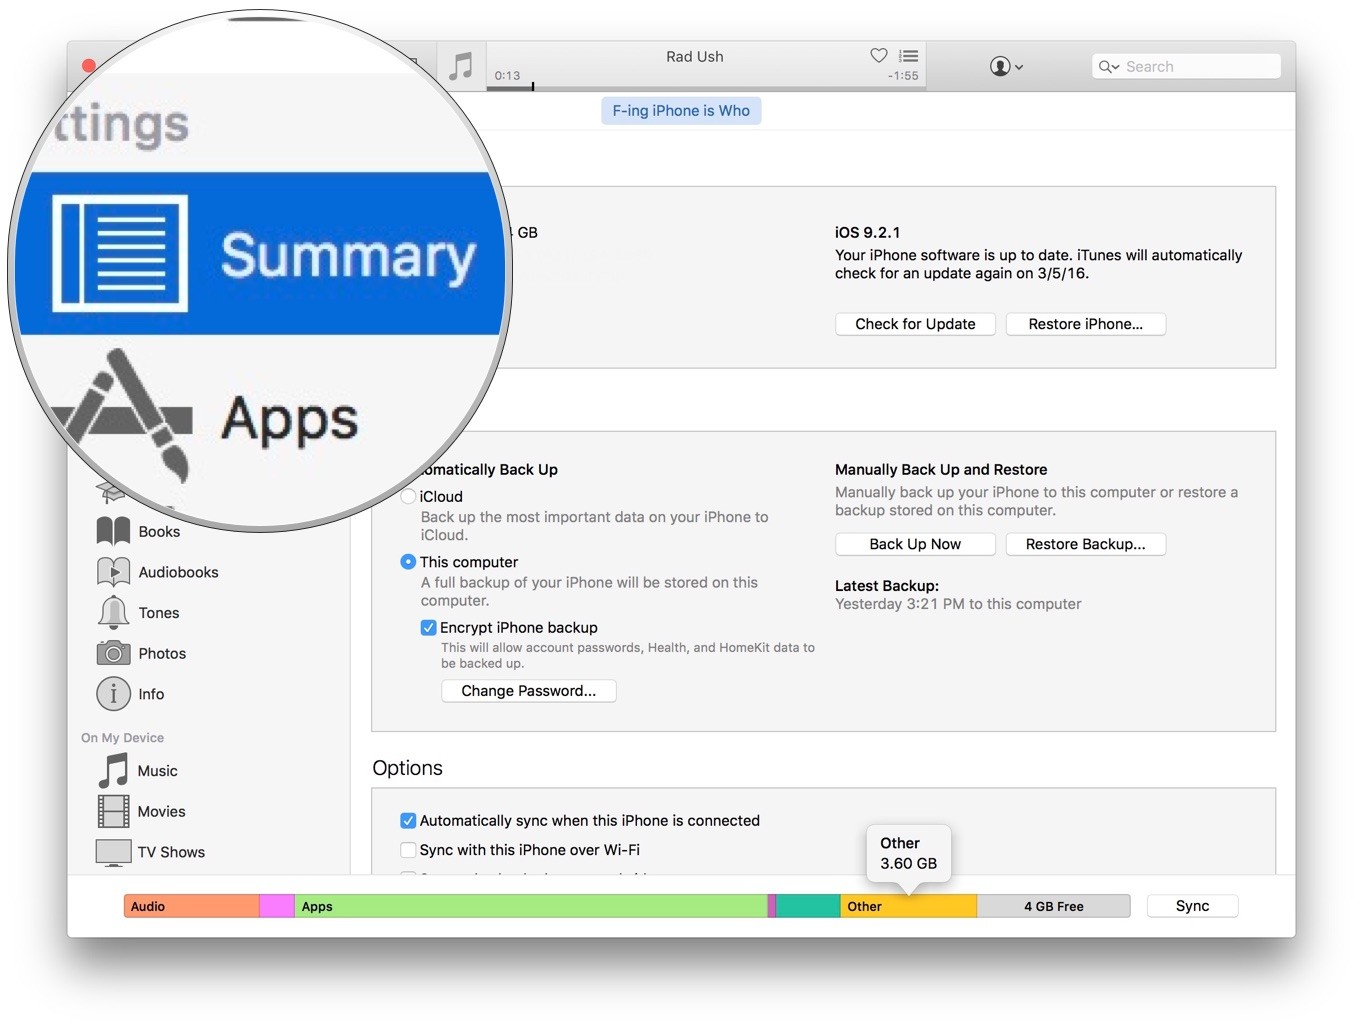 Device summary in iTunes